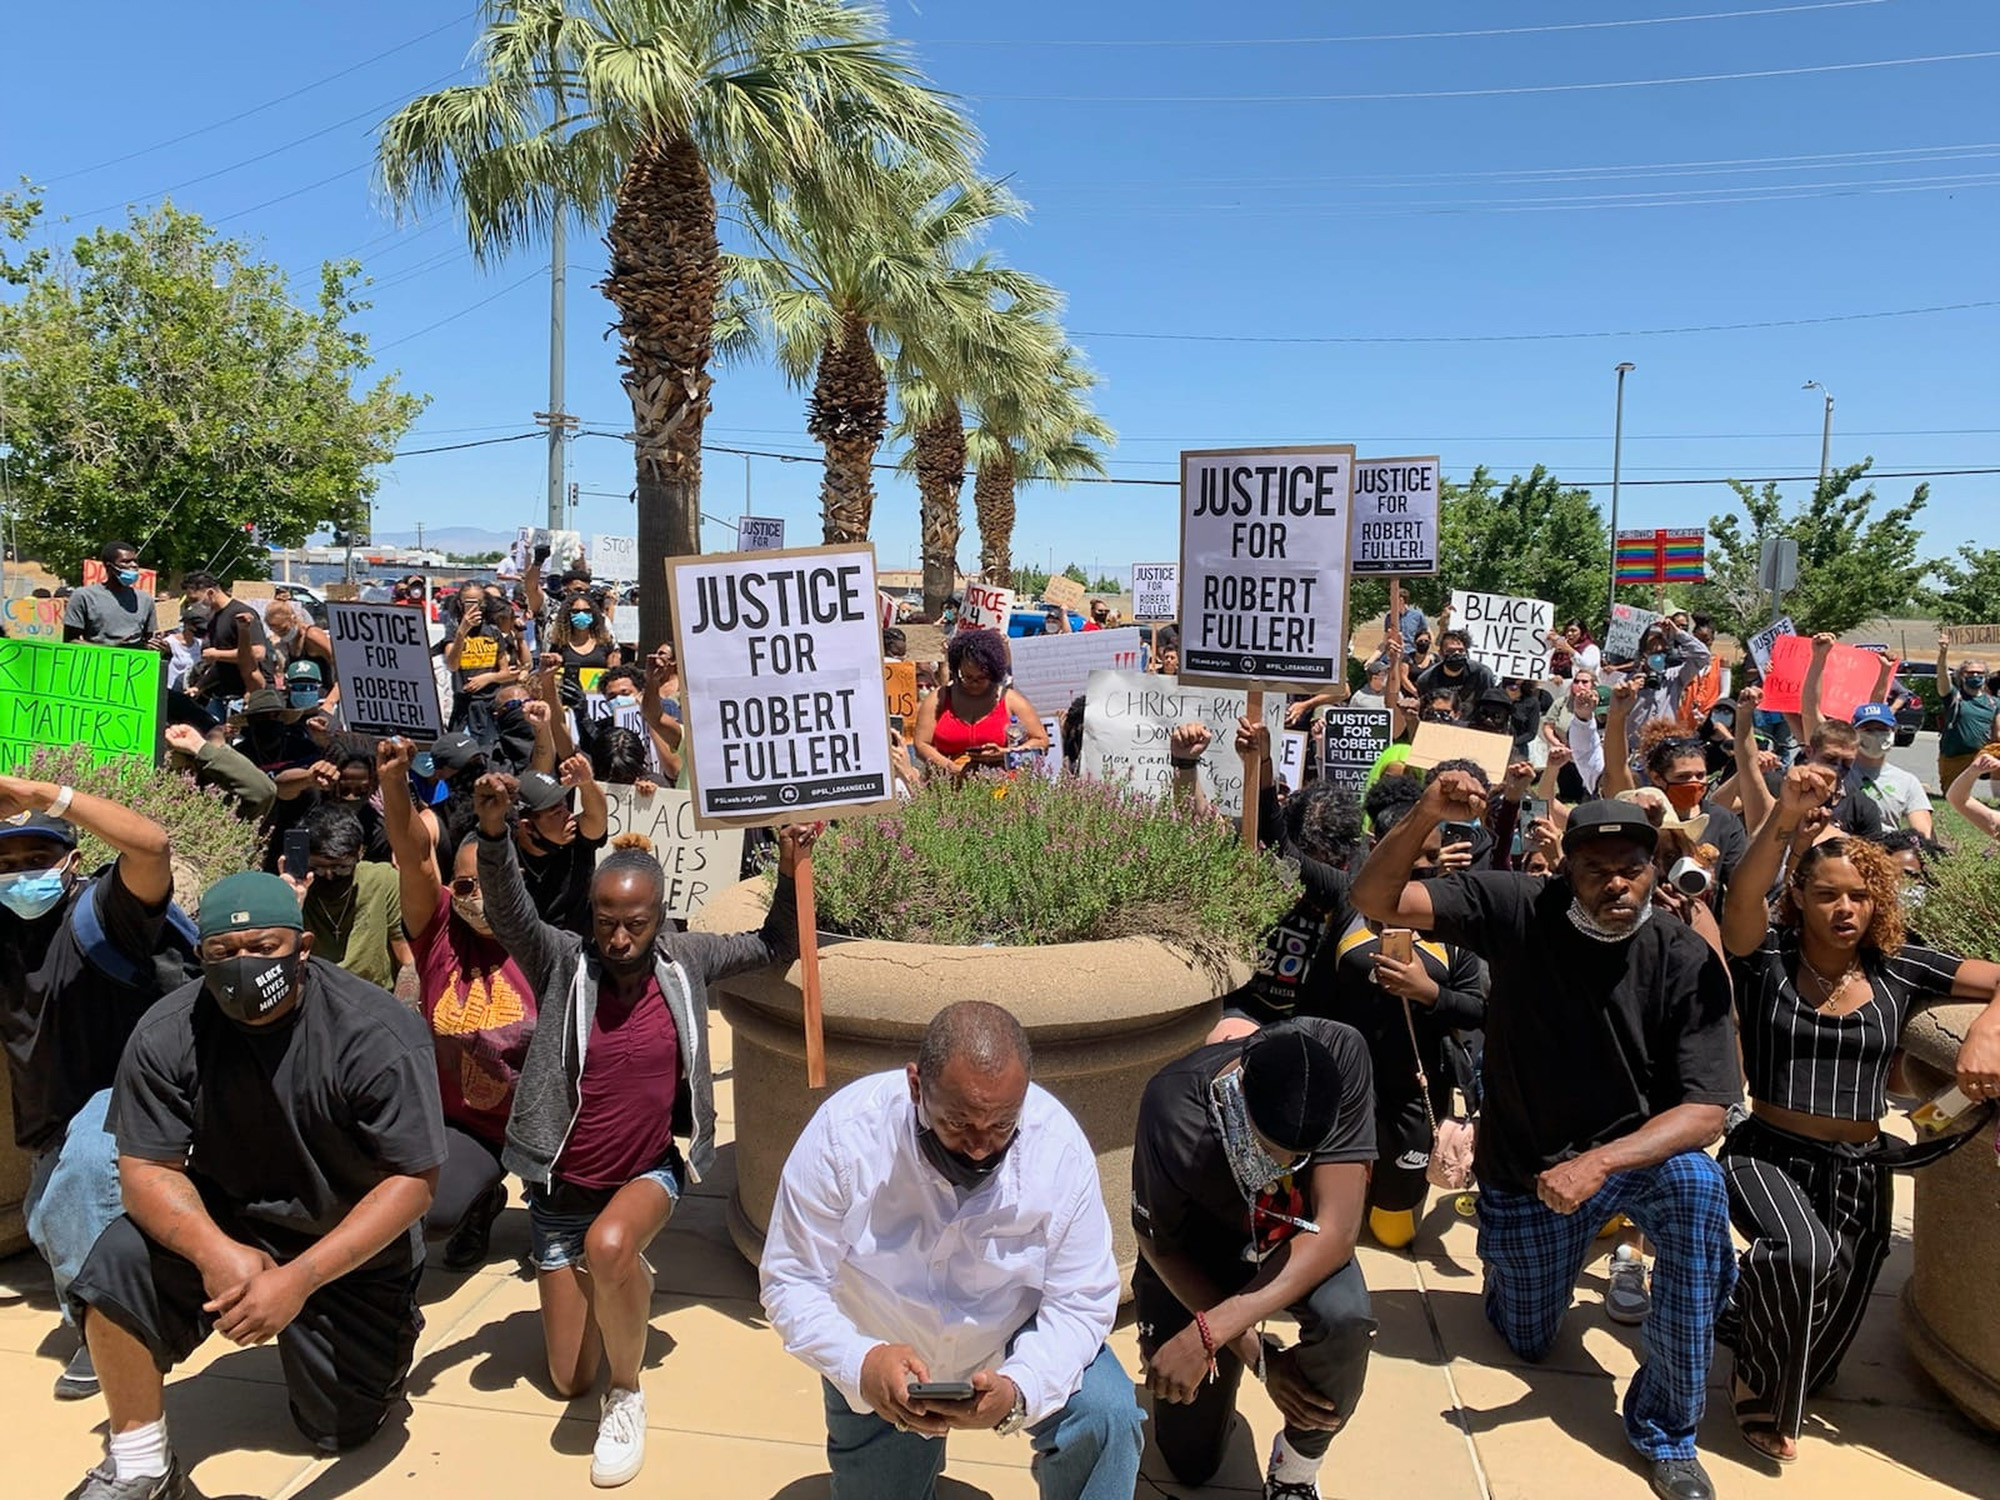 Activist Najee Ali, center, kneels with weekend demonstrators in front of the Palmdale Sheriff's station as protesters demand an investigation into the death of 24-year-old Robert Fuller, who was found hanging from a tree early Wednesday. On Monday, state Attorney General Xavier Becerra agreed to get the state involved. Photo by Josie Huang/KPCC/LAist via AP